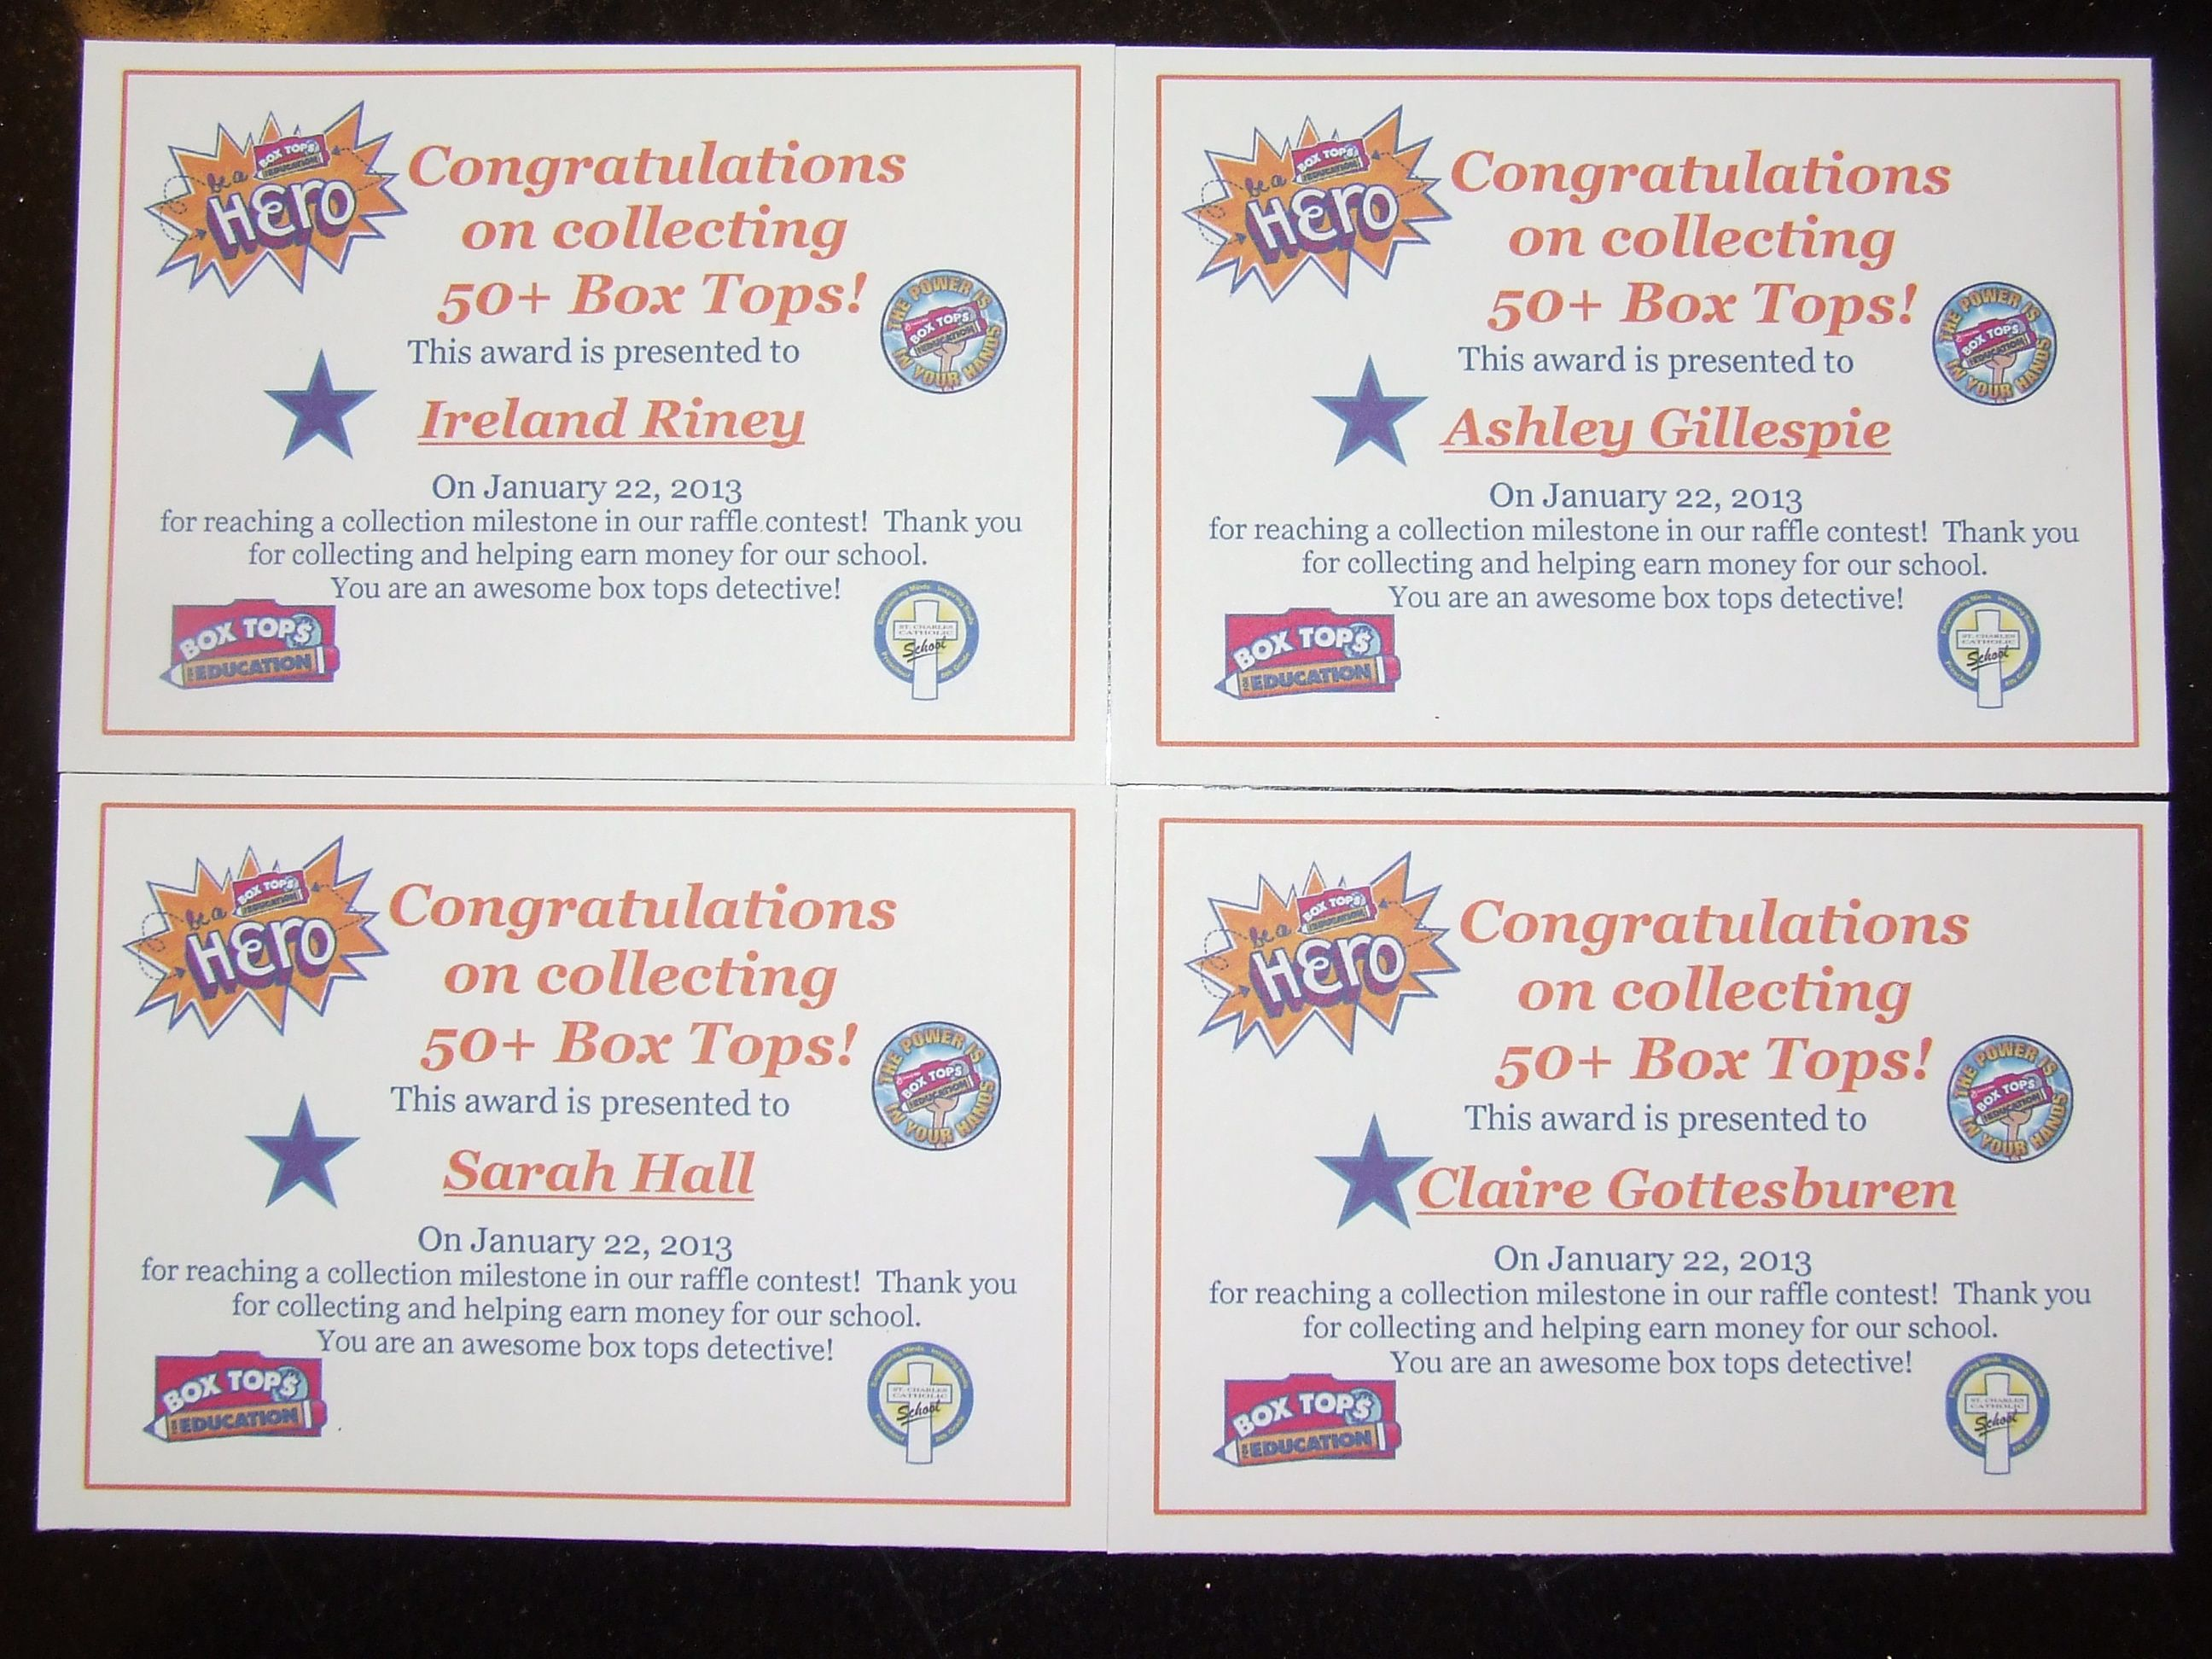 Certificates to celebrate students who brought in 50 box tops certificates to celebrate students who brought in box tops thank you janine robinson mcqueen for the certificate ideatemplate yelopaper Image collections